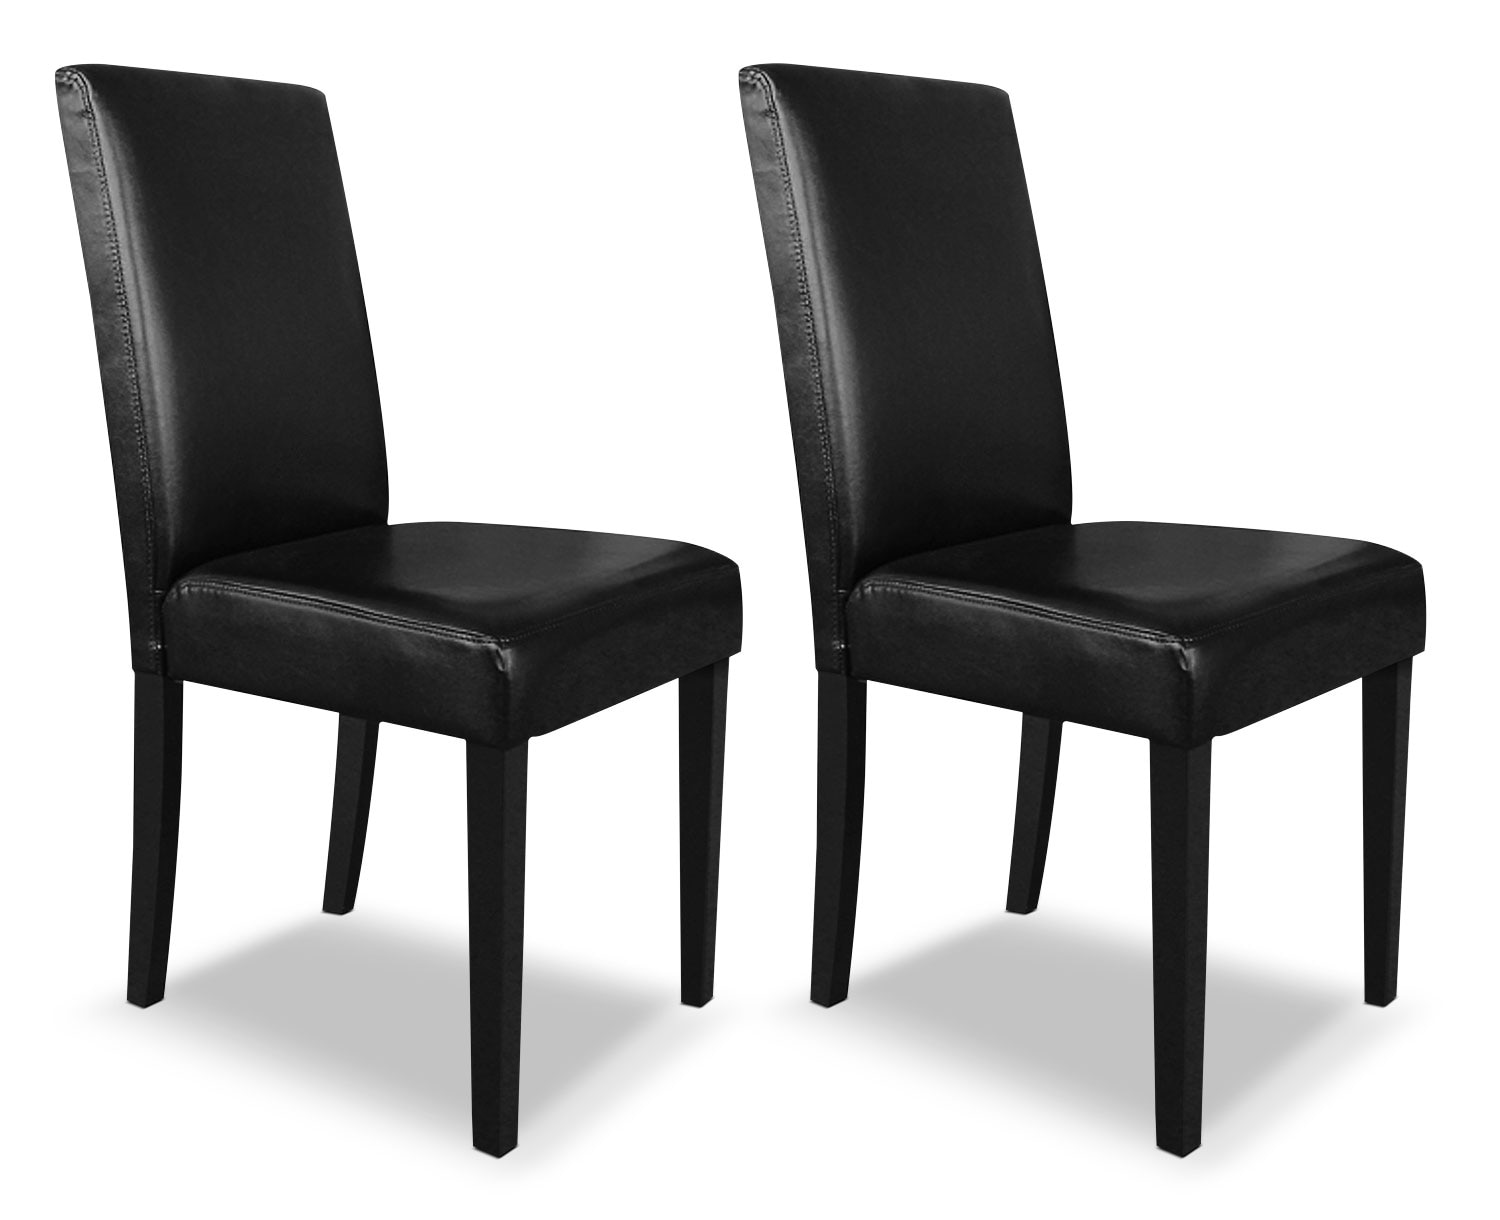 Black faux leather accent dining chair set of 2 united for Black leather dining chairs